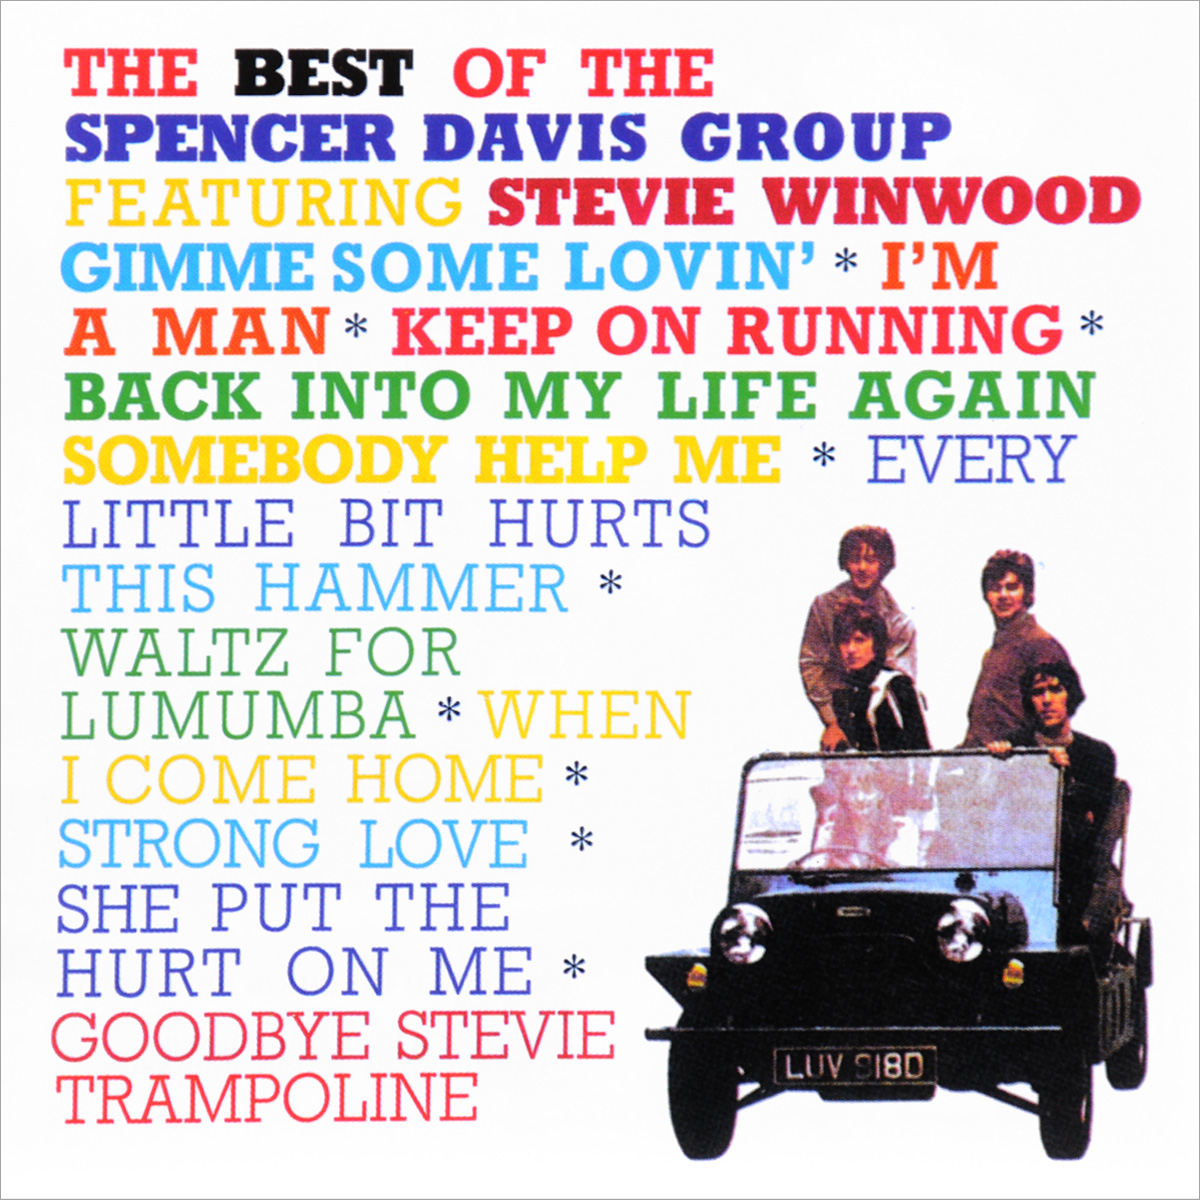 Spencer Davis Group, Stevie Winwood. The Best Of Spencer Davis Group